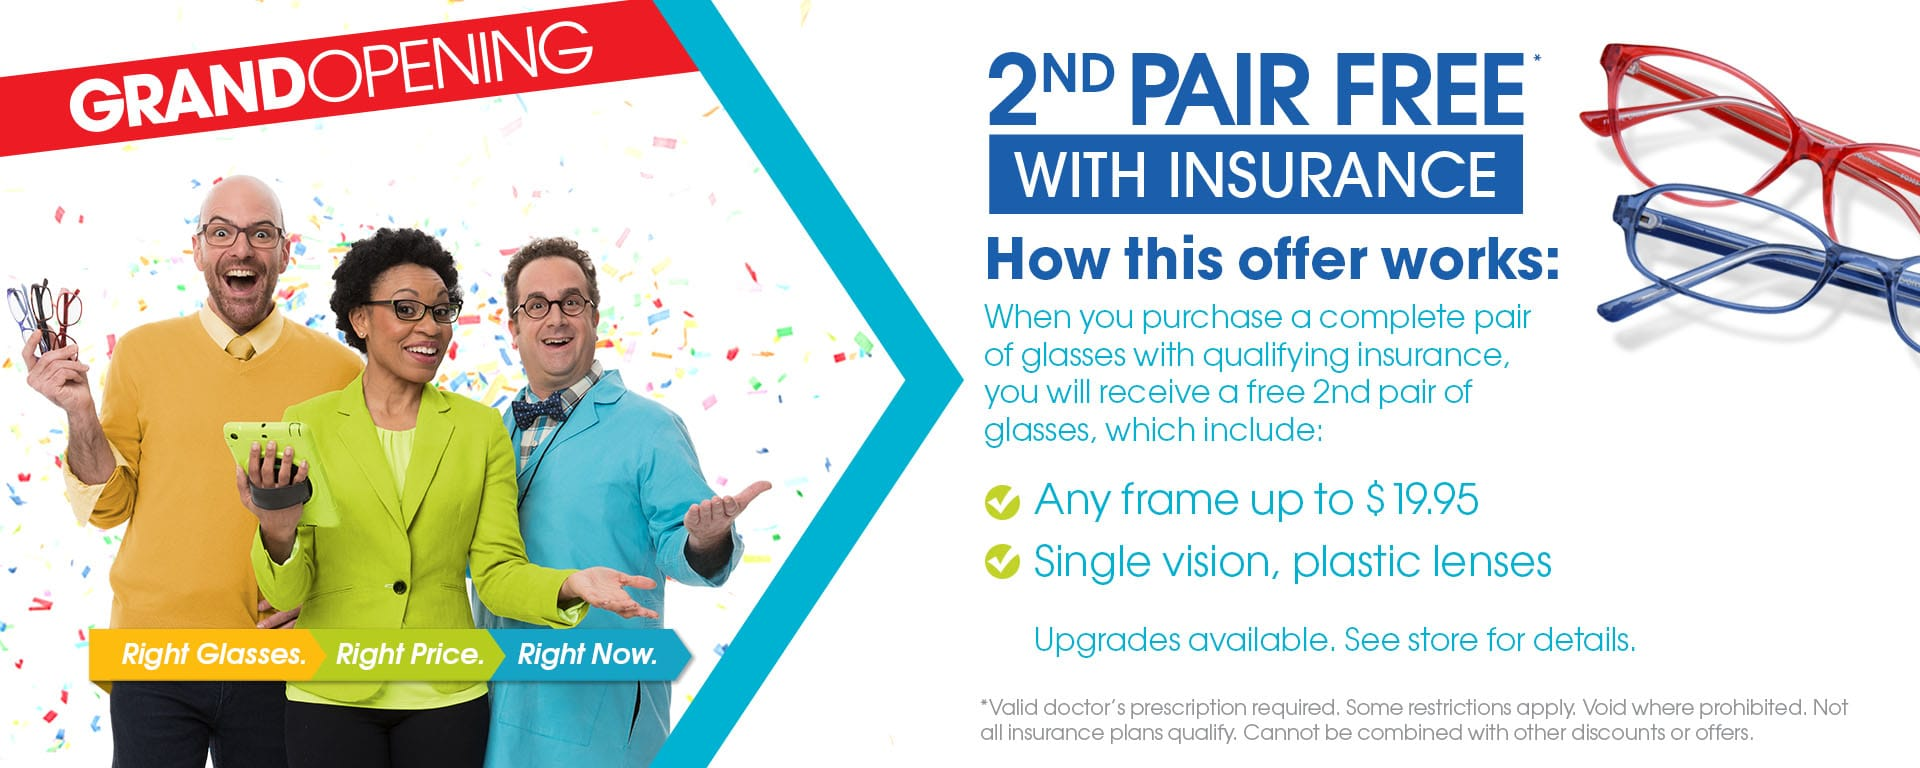 Offer valid in-store only. Not all insurance plans will qualify. Includes $19.95 frames and single vision, plastic lenses. Bifocals extra. Void where prohibited. Cannot be combined with any other discounts or offers. Valid doctor's prescription required.